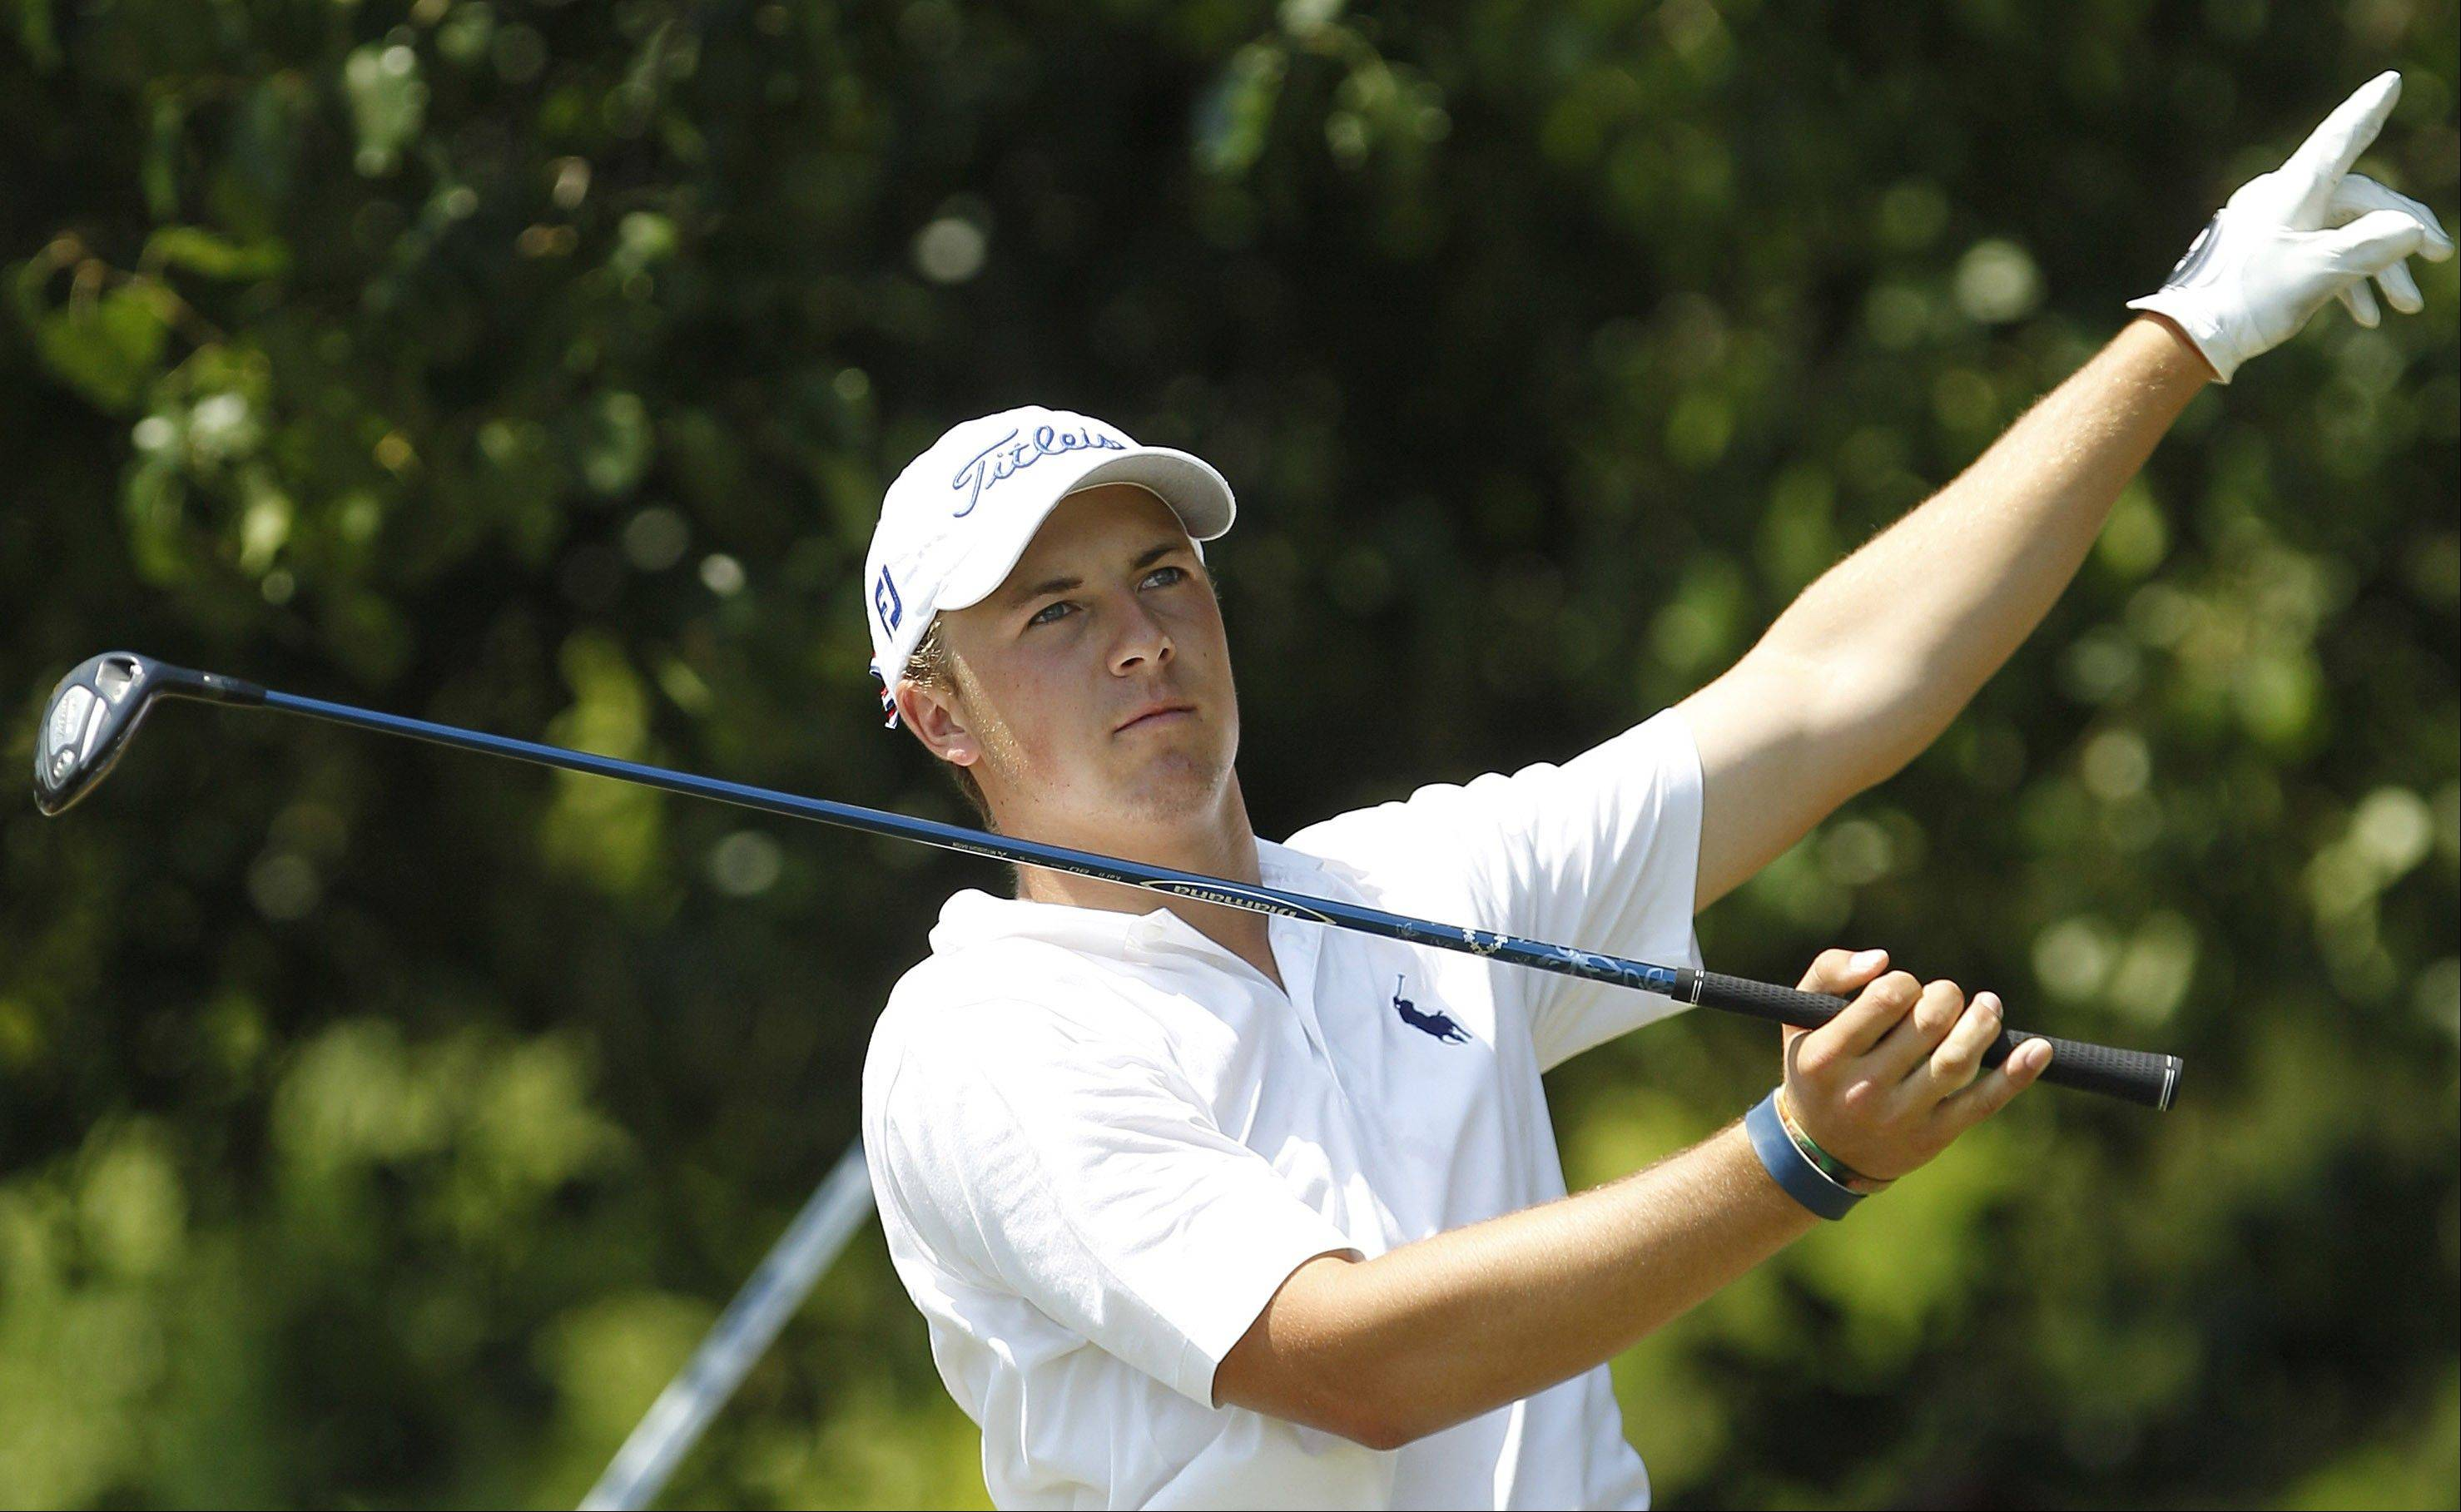 Jordan Spieth, who won the U.S. Junior title the last two years, is in the field for the 109th Western Amateur, which begins next week at North Shore Country Club in Glencoe. Spieth turns 18 on Wednesday.